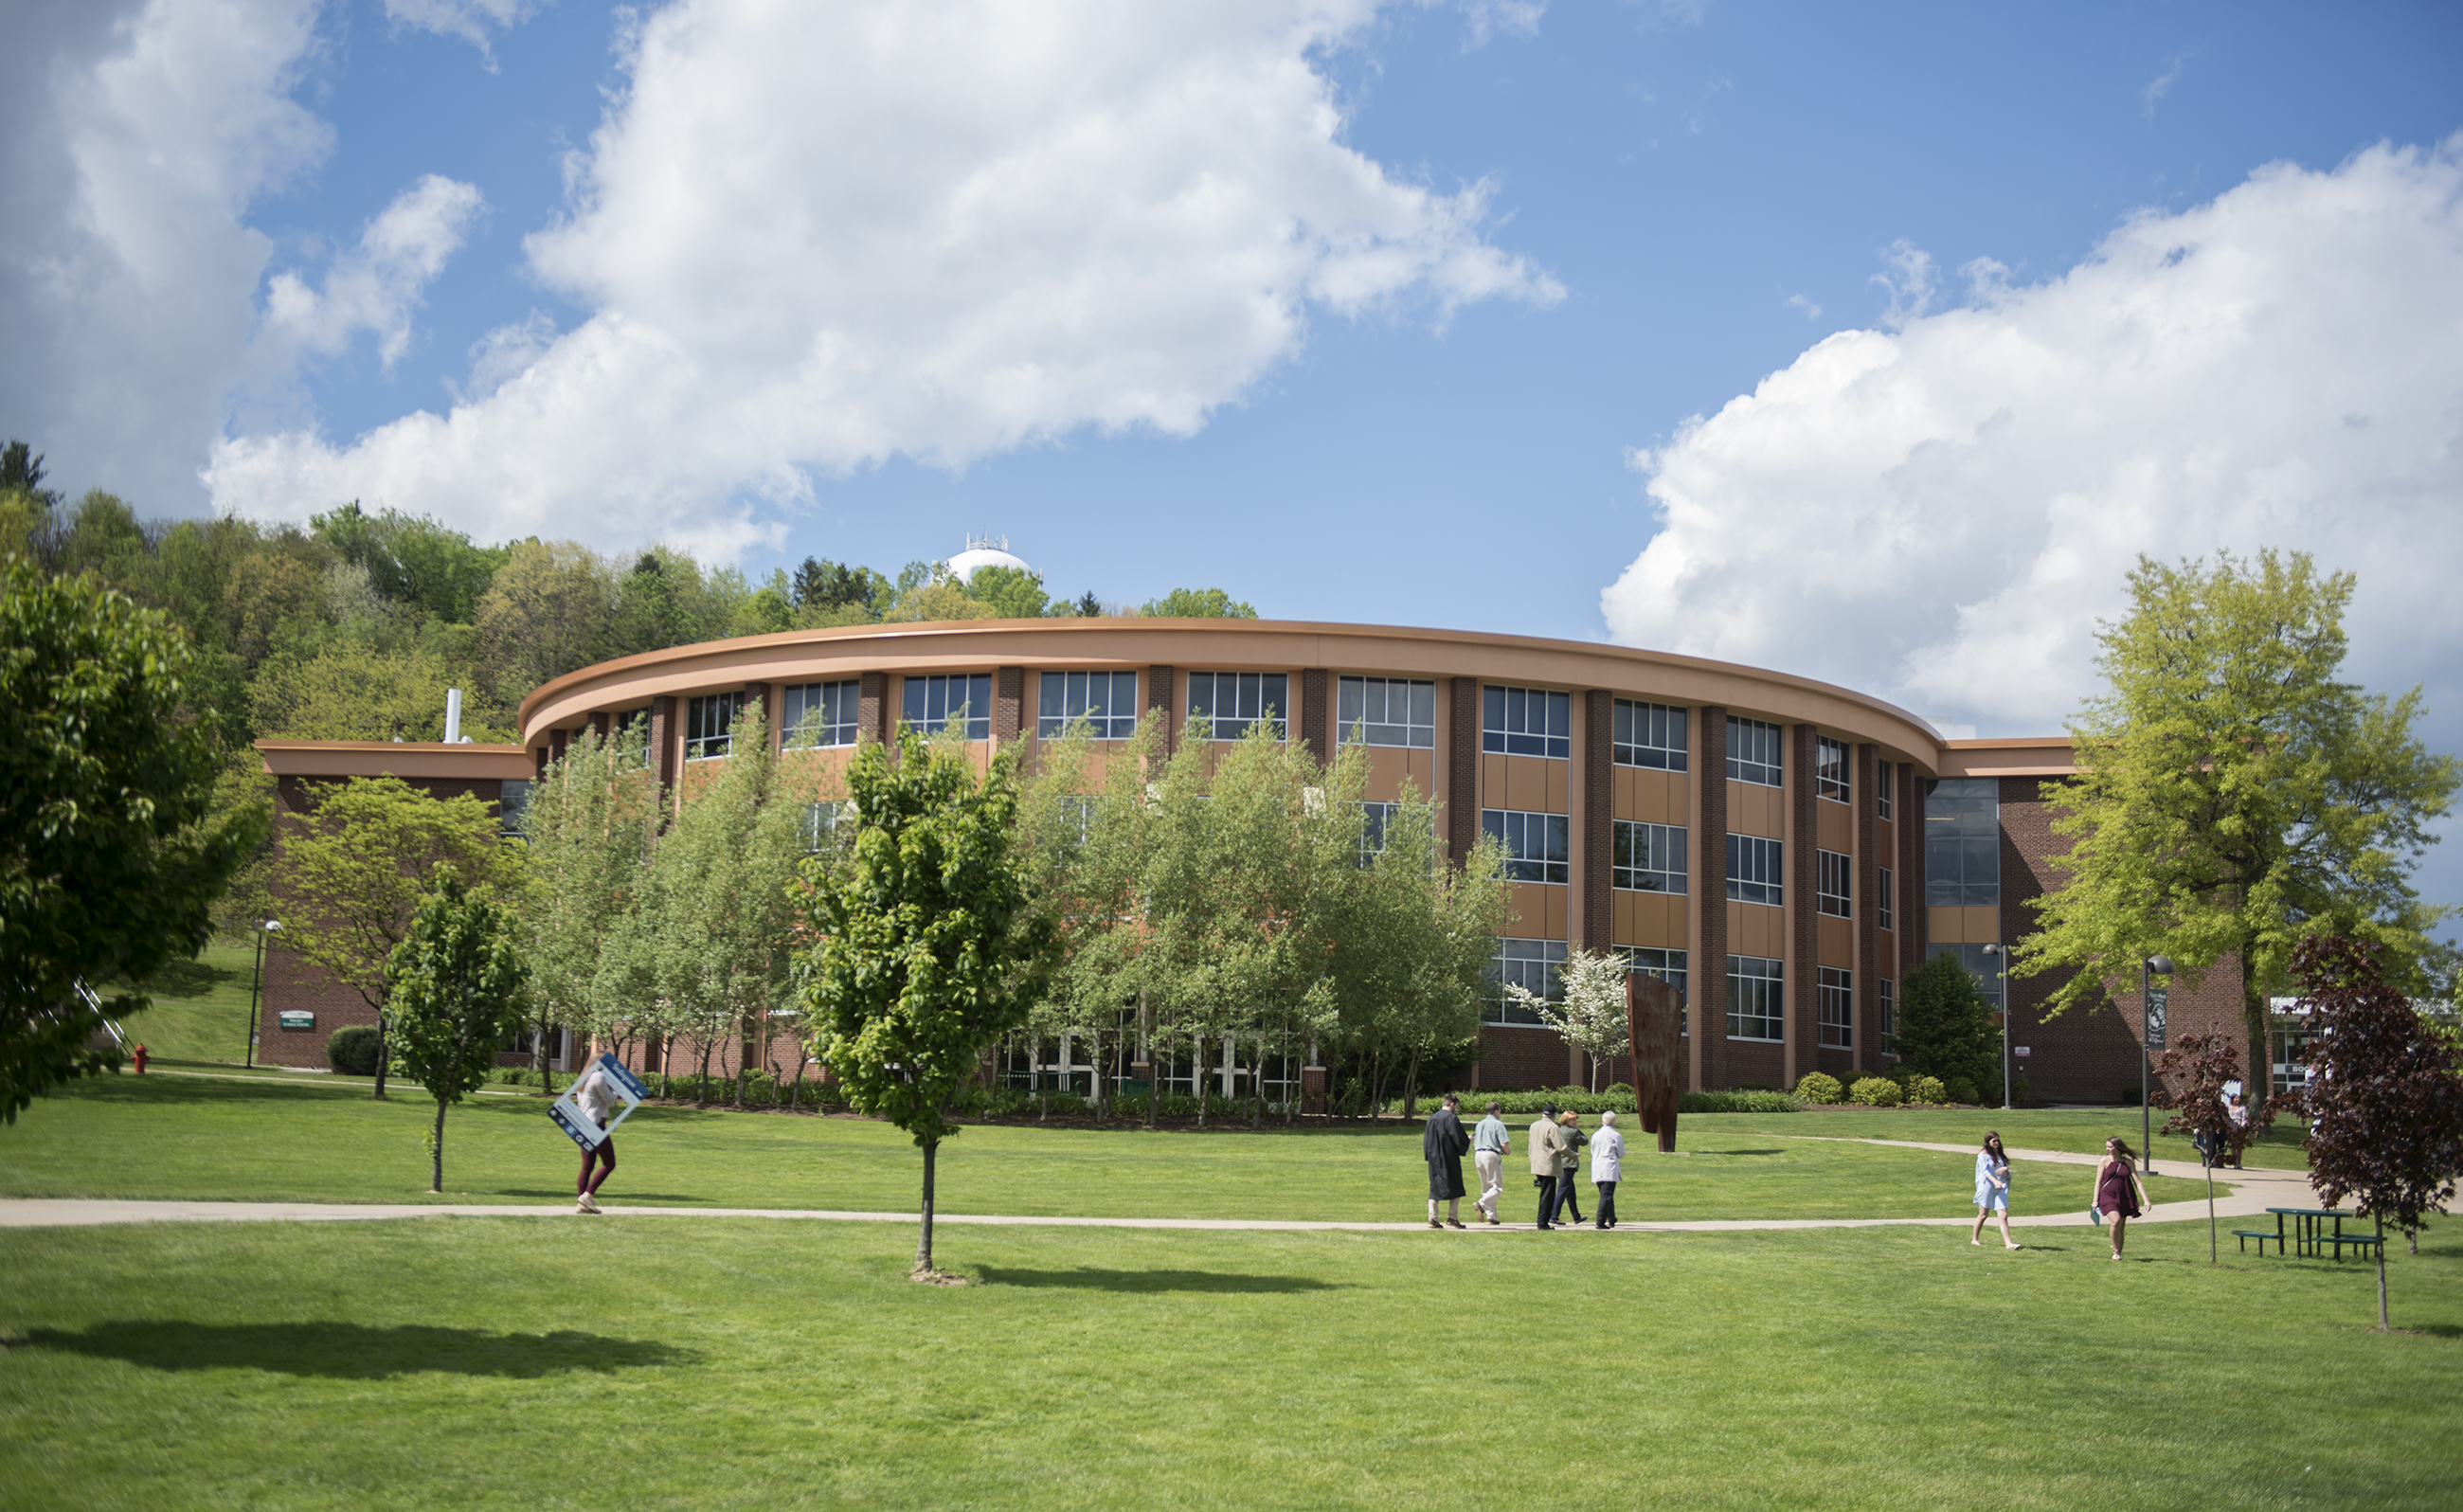 Slippery Rock Is The Only State University Other Than West Chester, Located  In The Fast Growing Philadelphia Suburbs, Whose Enrollment Is As High As It  Was ...